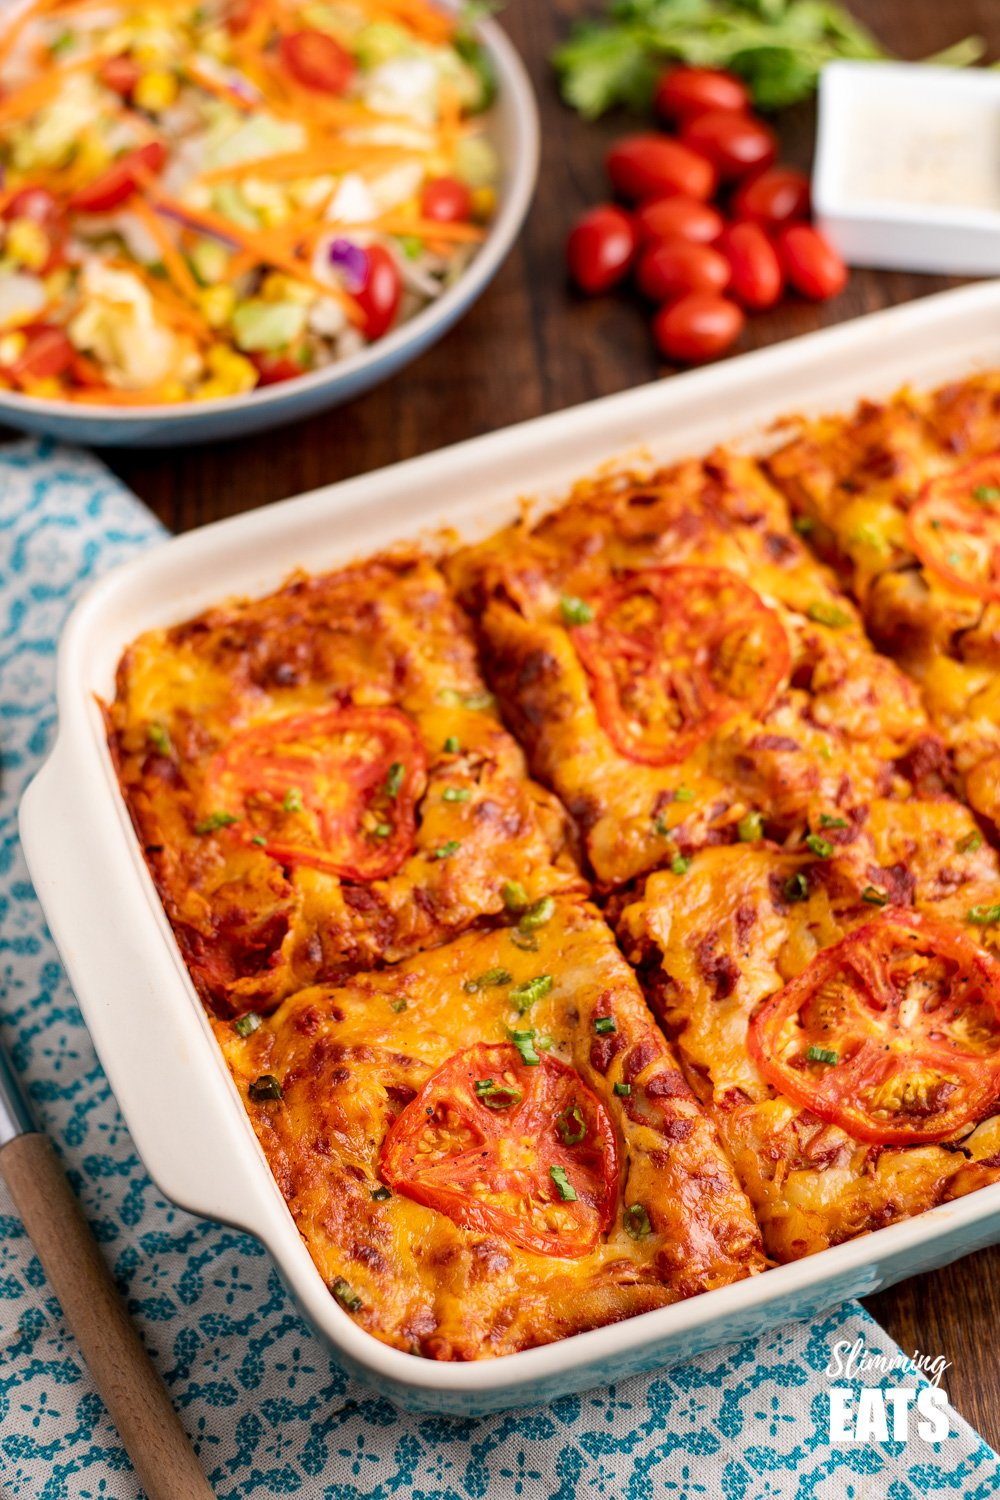 spicy Mexican chicken lasagne in oven proof dish with salad and tomatoes in background